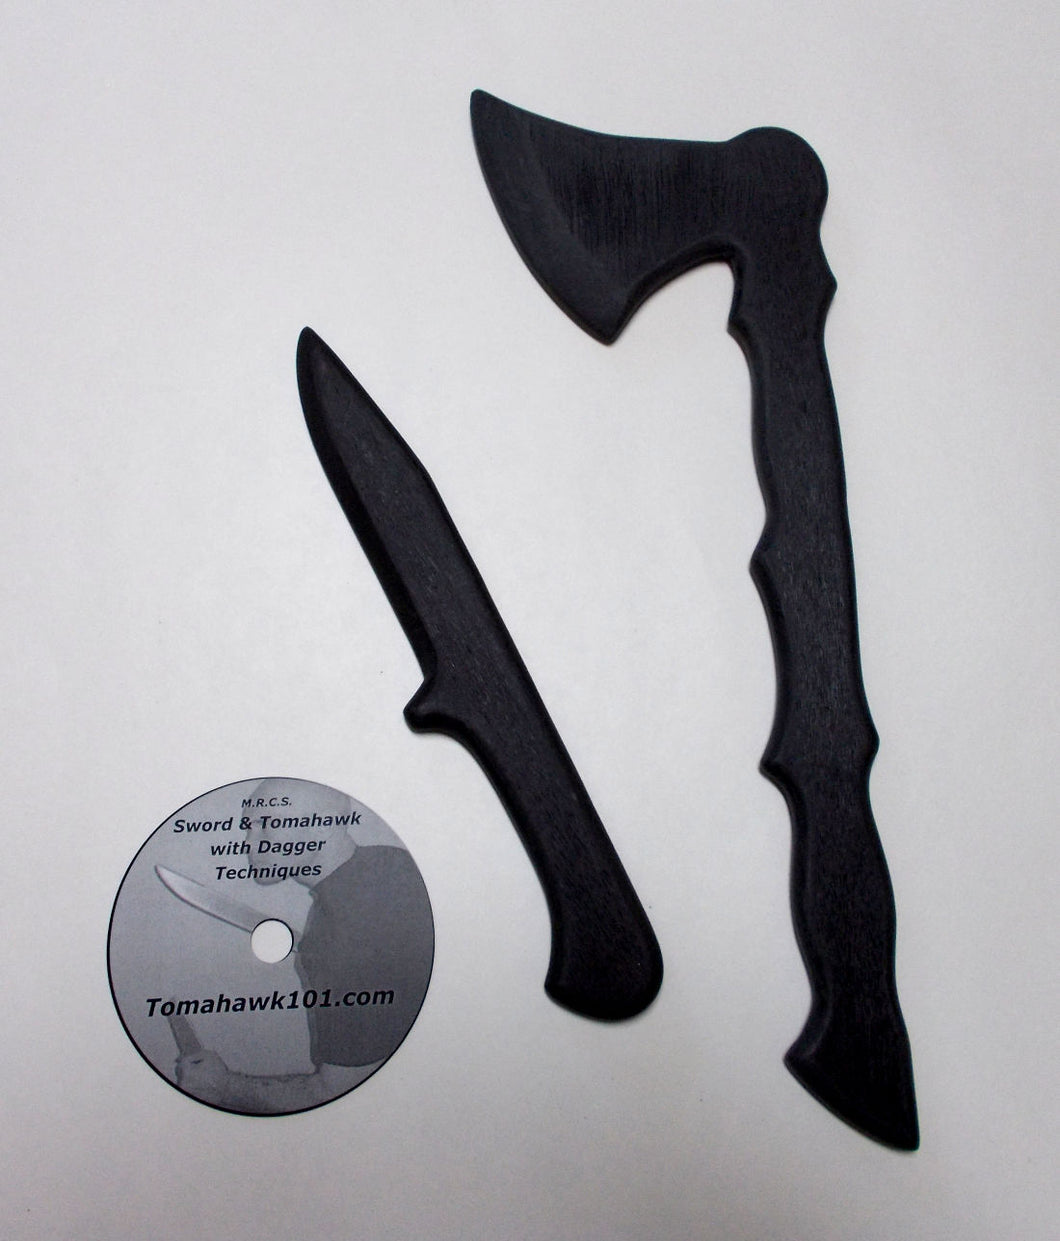 Tactical Training Tomahawk Polypropylene Dagger SF Knife Martial Arts Techniques DVD